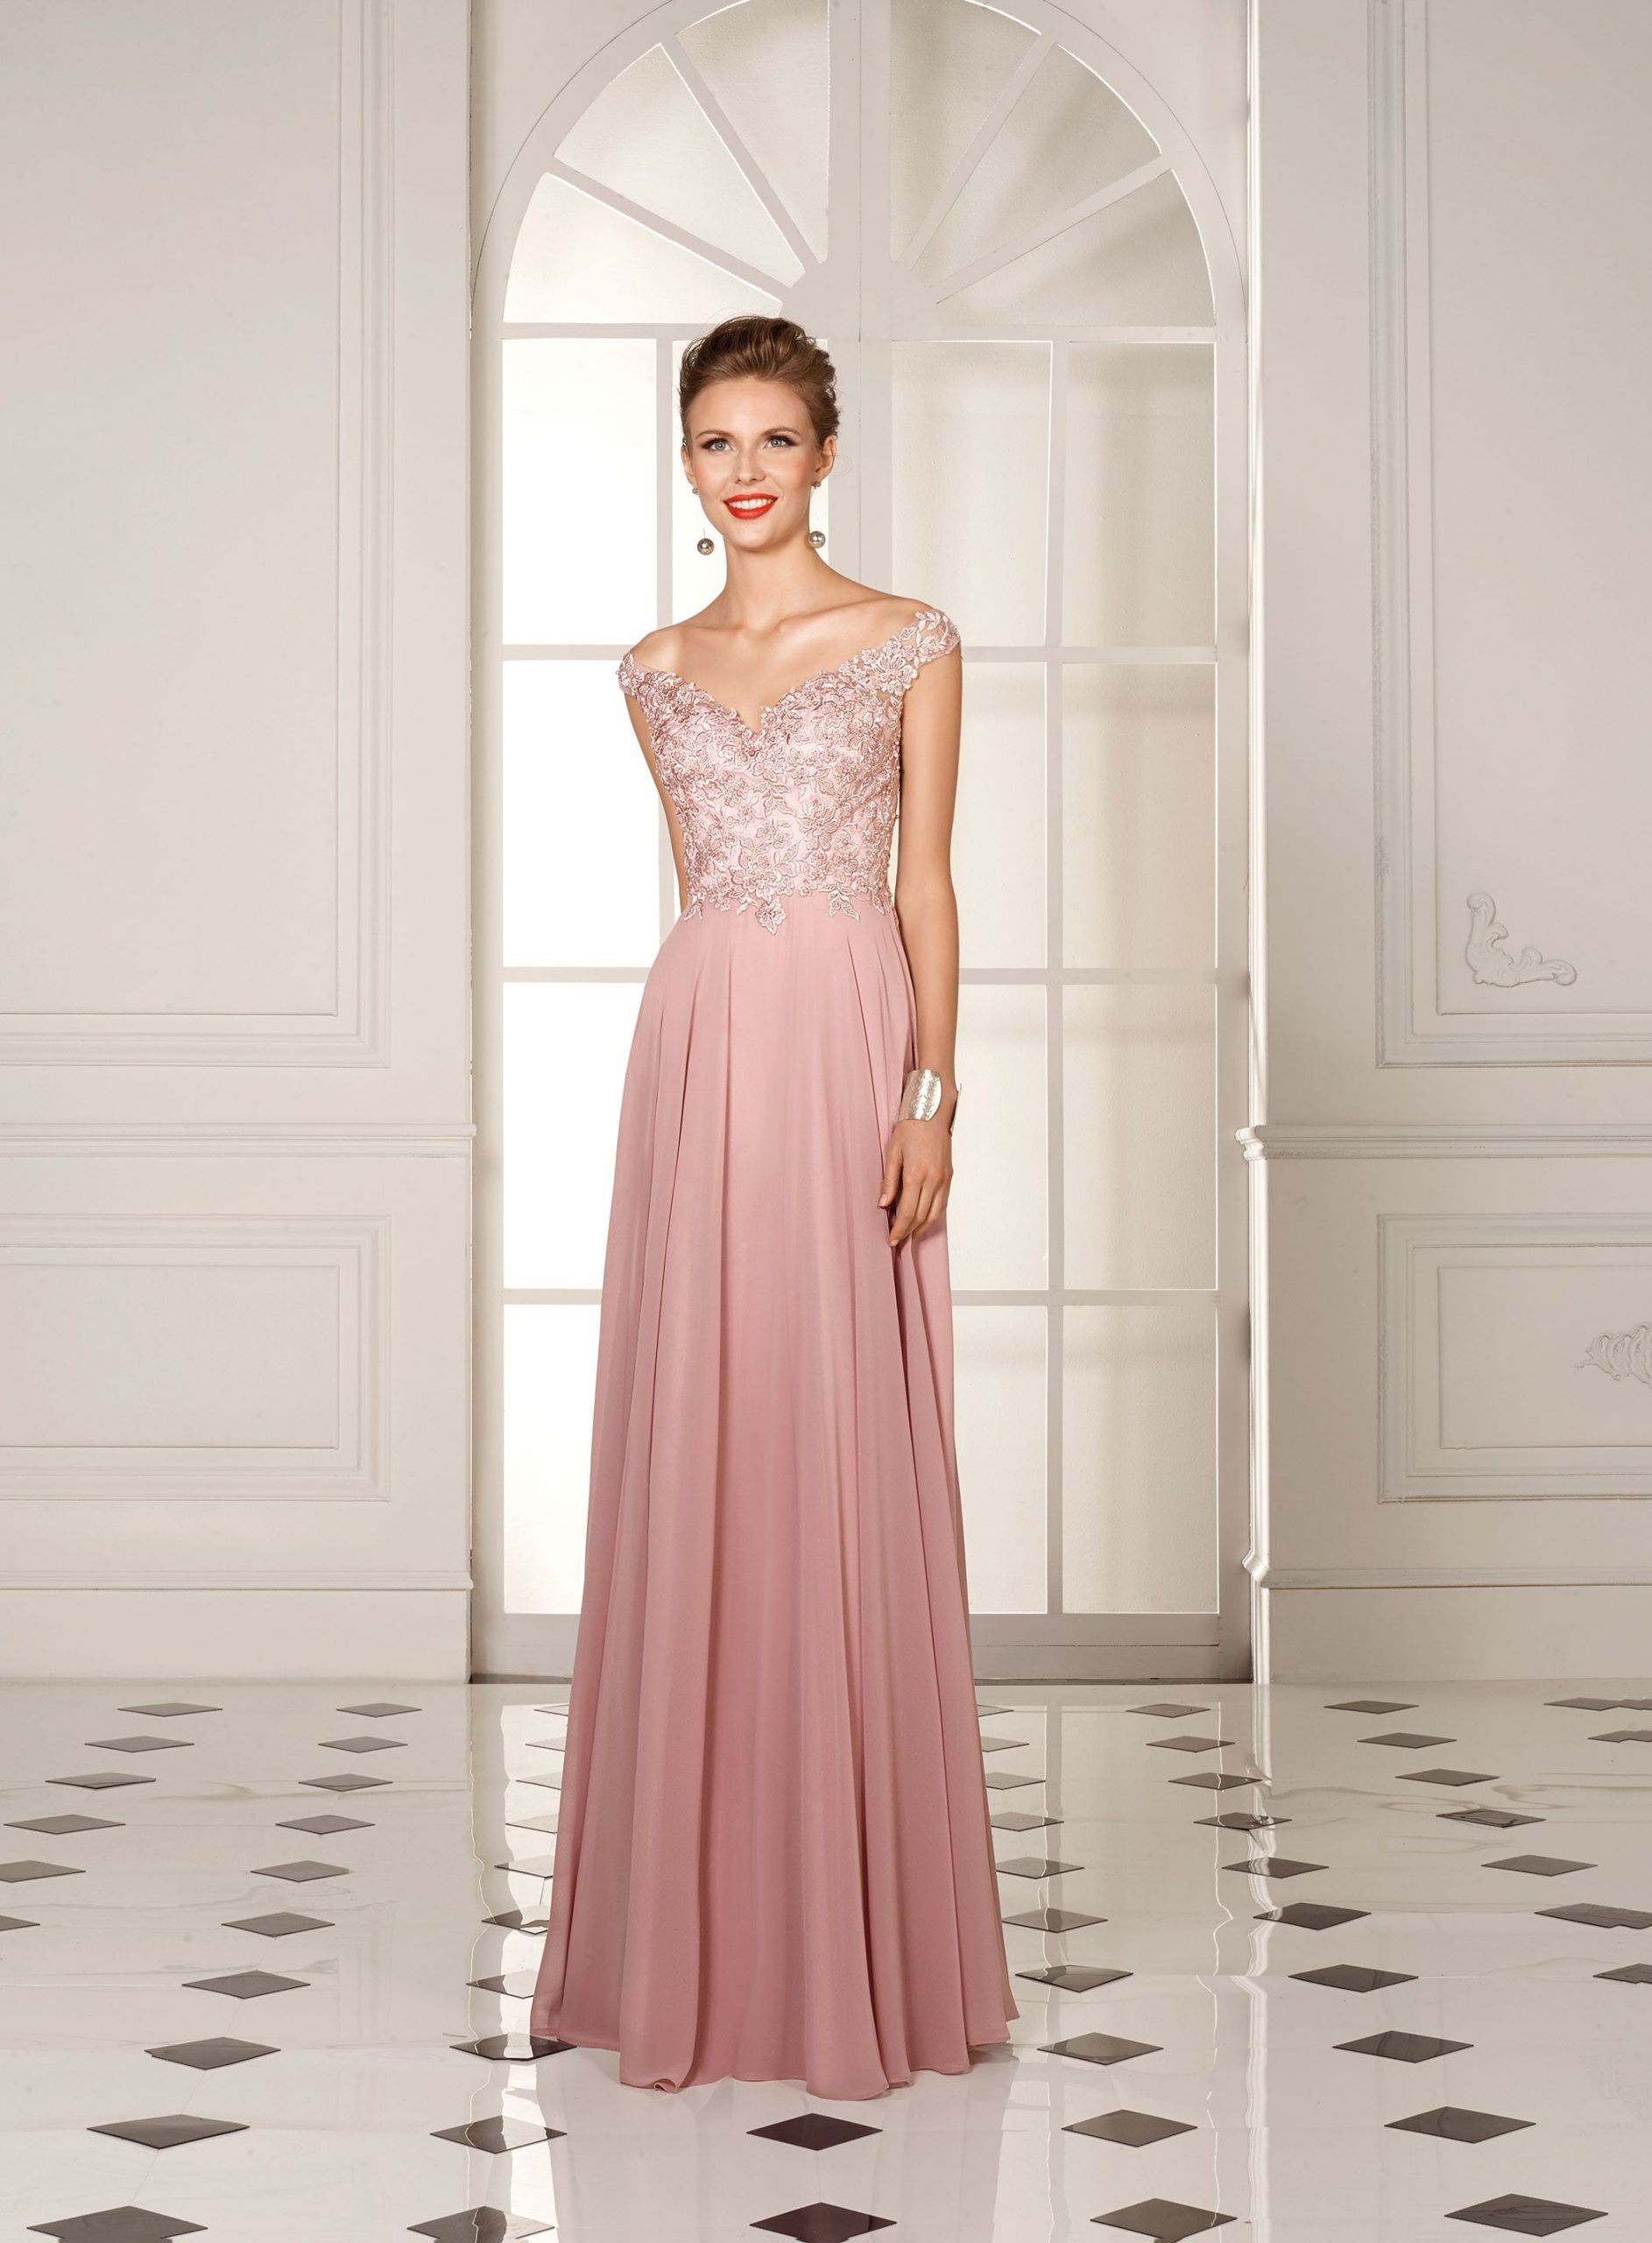 Robes longues roses